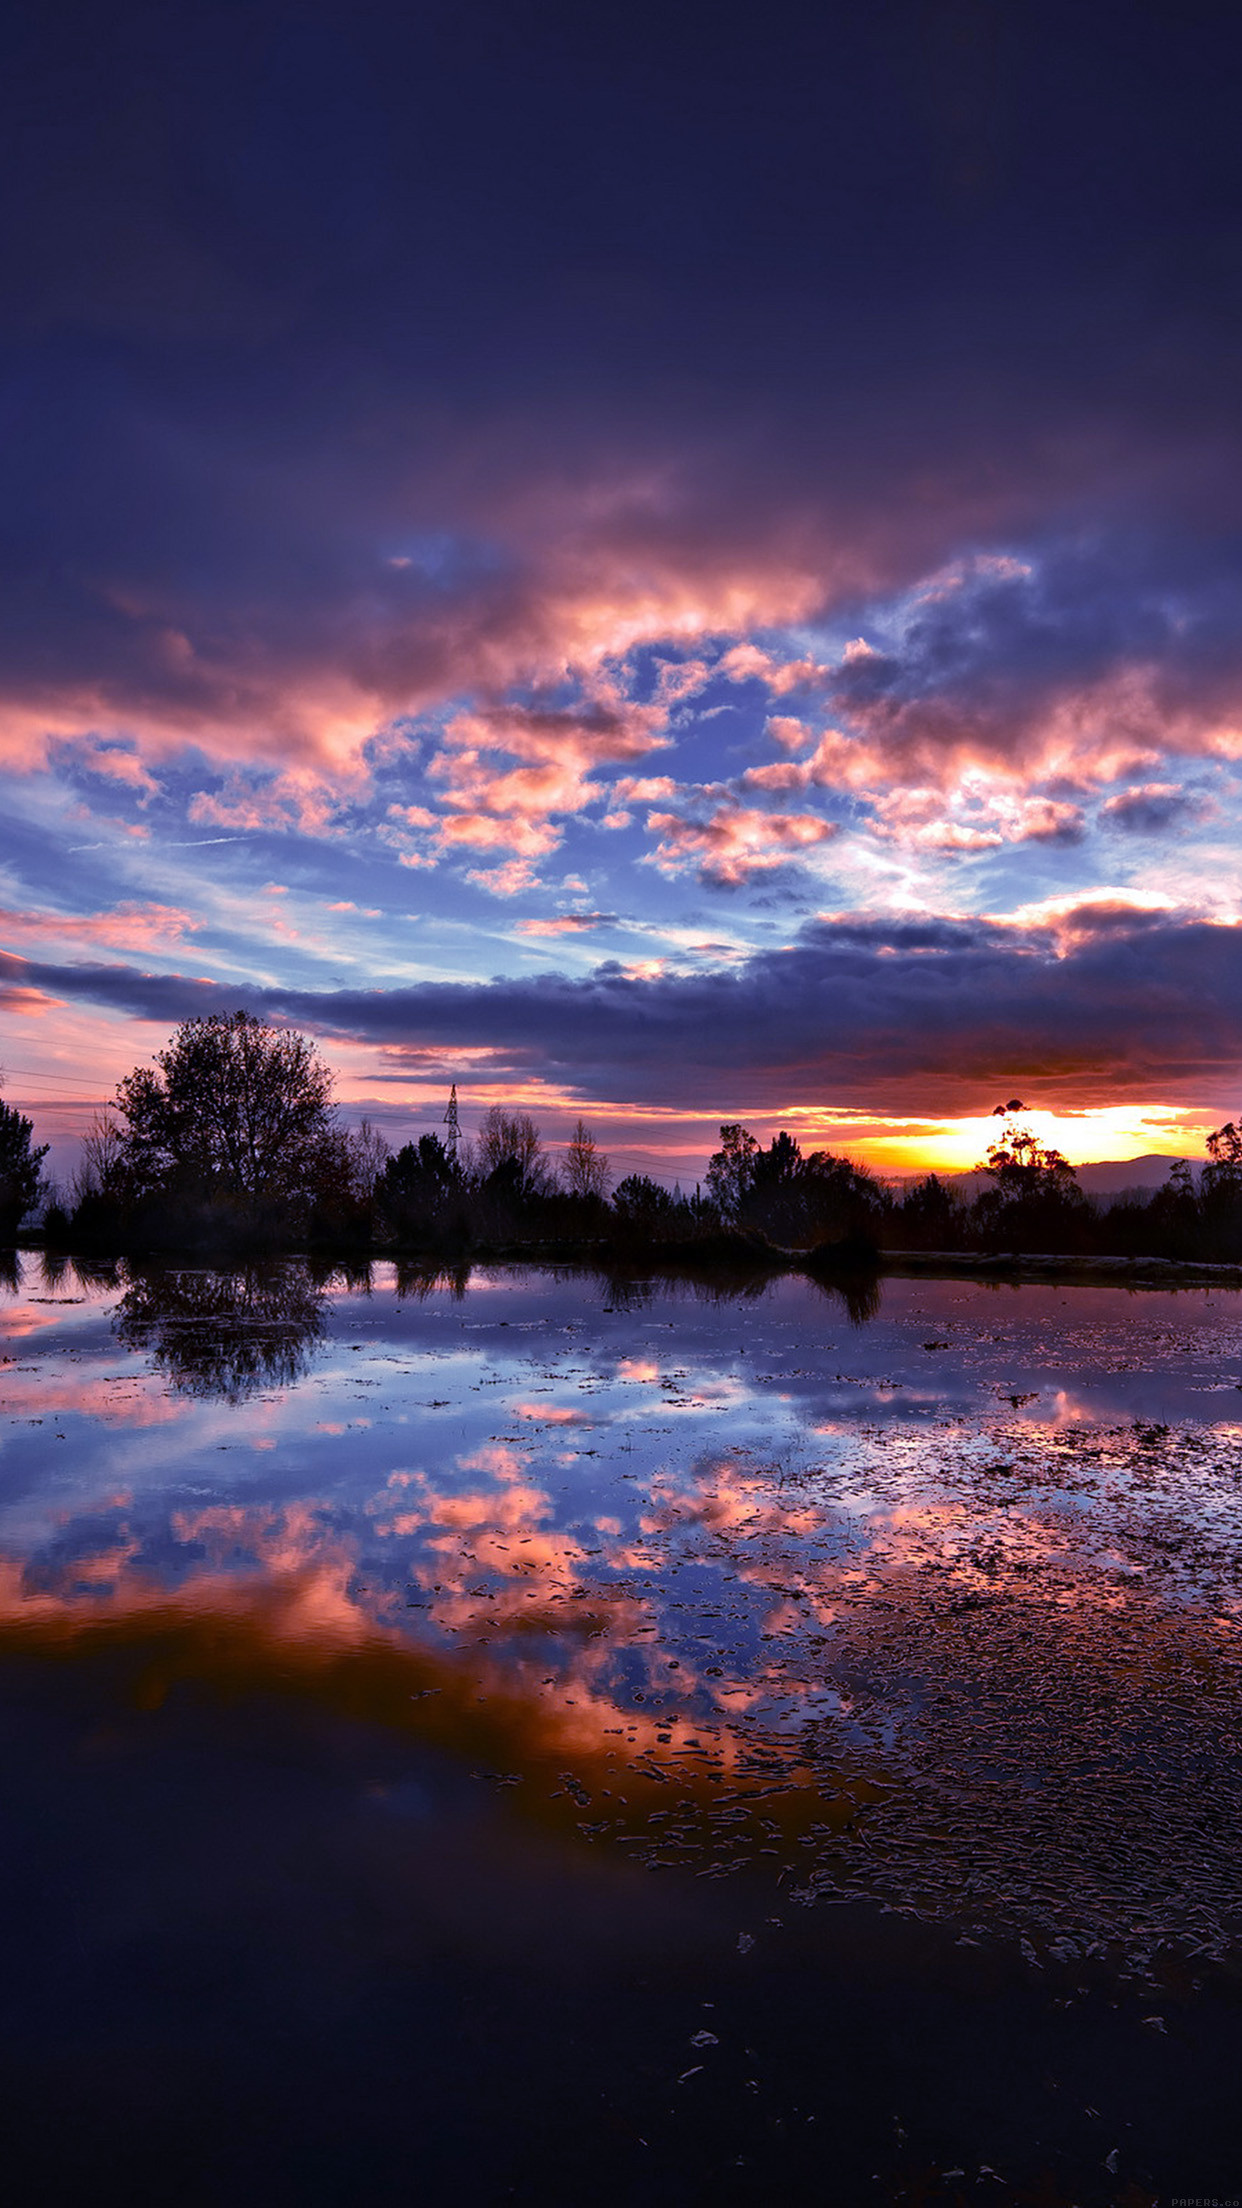 river-entertainment-red-sky-nature-city-9-wallpaper